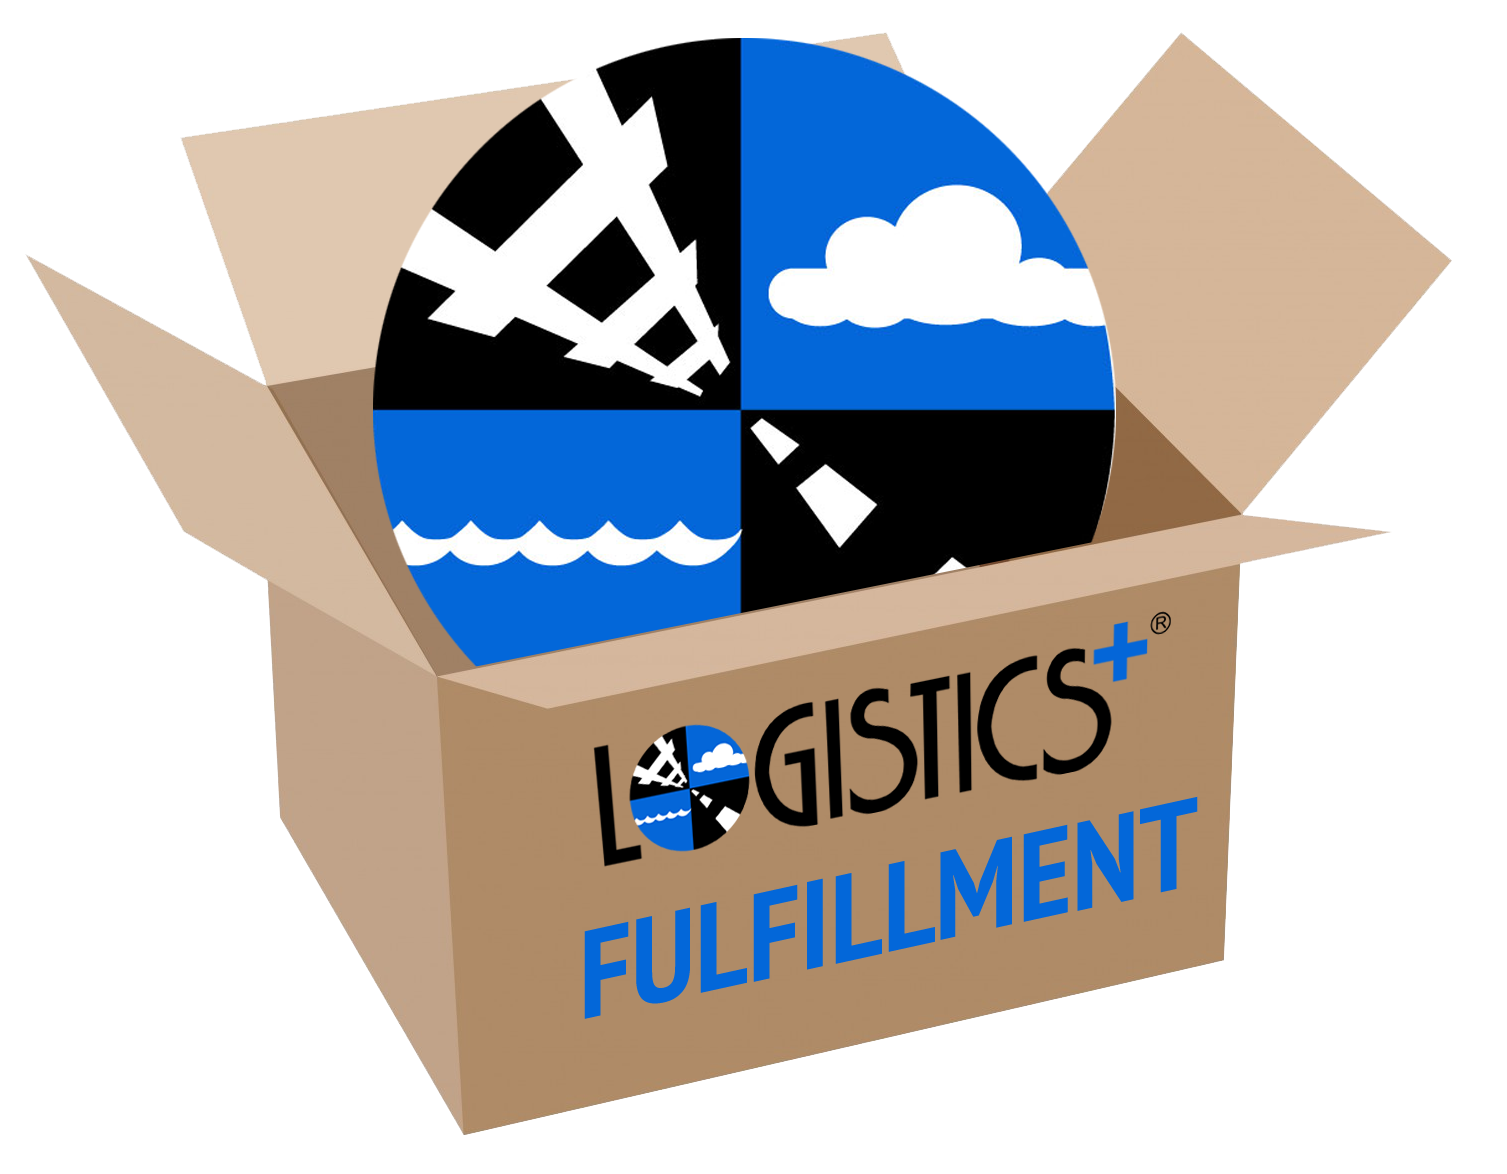 Fulfillment Quotes Amusing Warehousing & Fulfillment Solutions Quotes  Logistics Plus